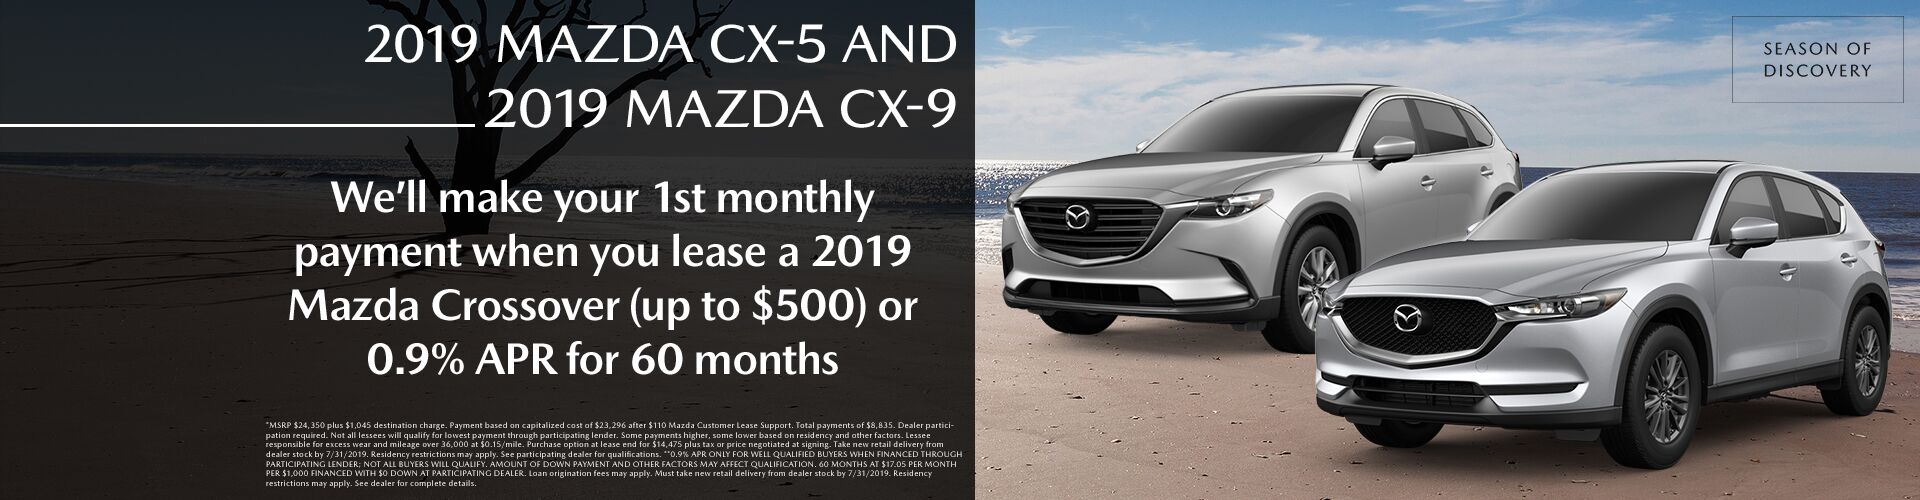 2019 CX-5 and CX-9 - Season of Discovery